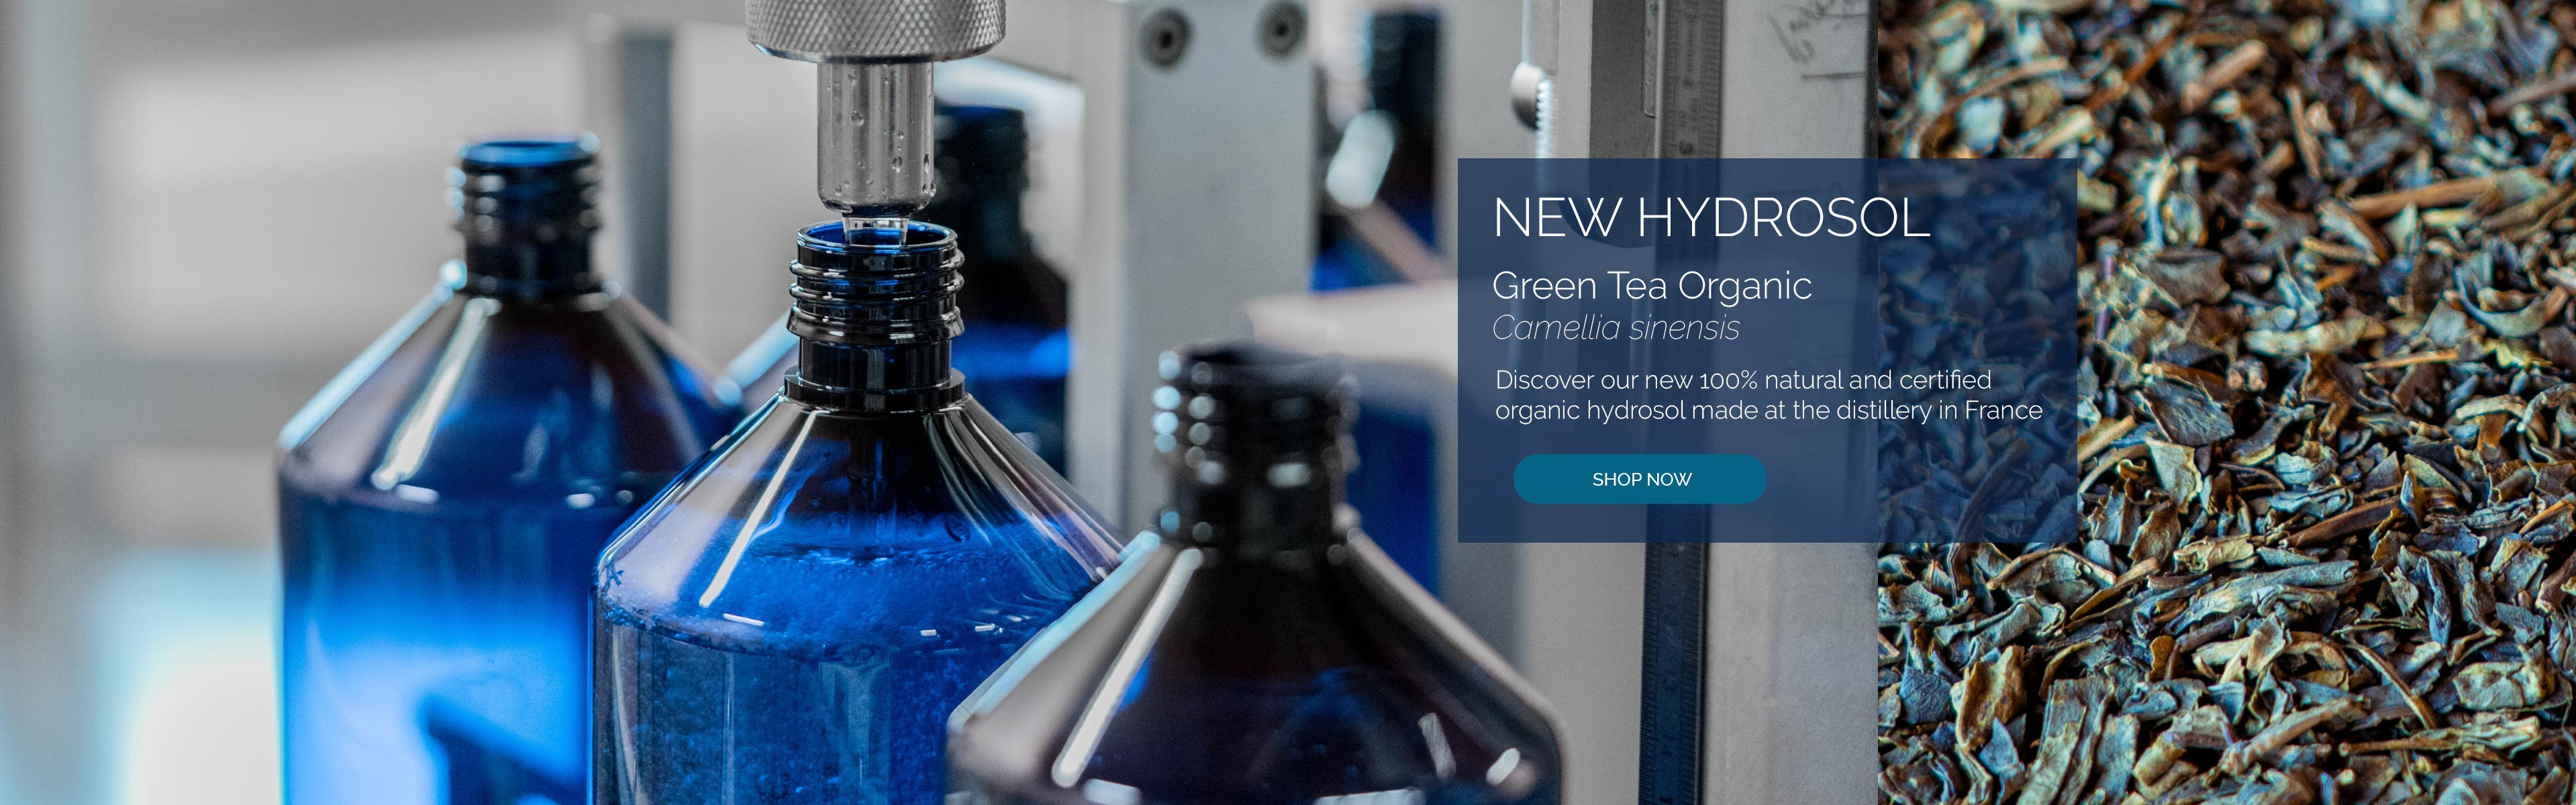 Green Tea Organic . Discover our 100% natural and organic hydrosol made at the distillery in France